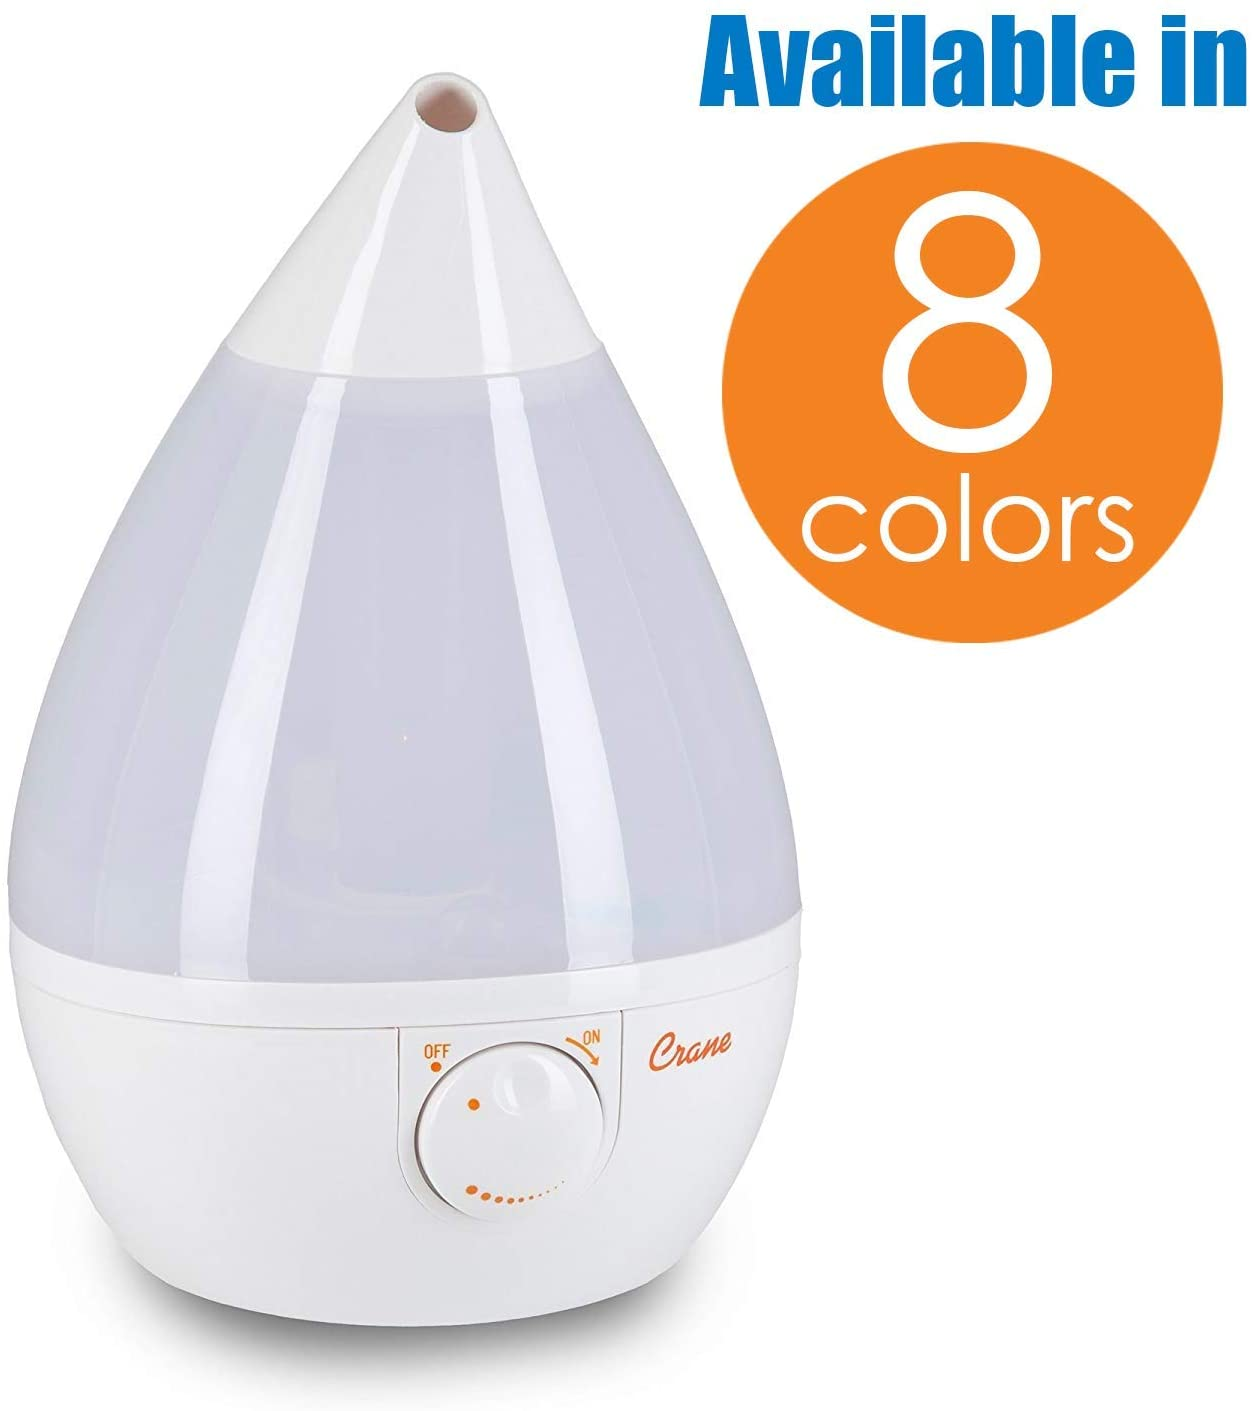 UltraSonic Cool Mist Humidifier by Crane